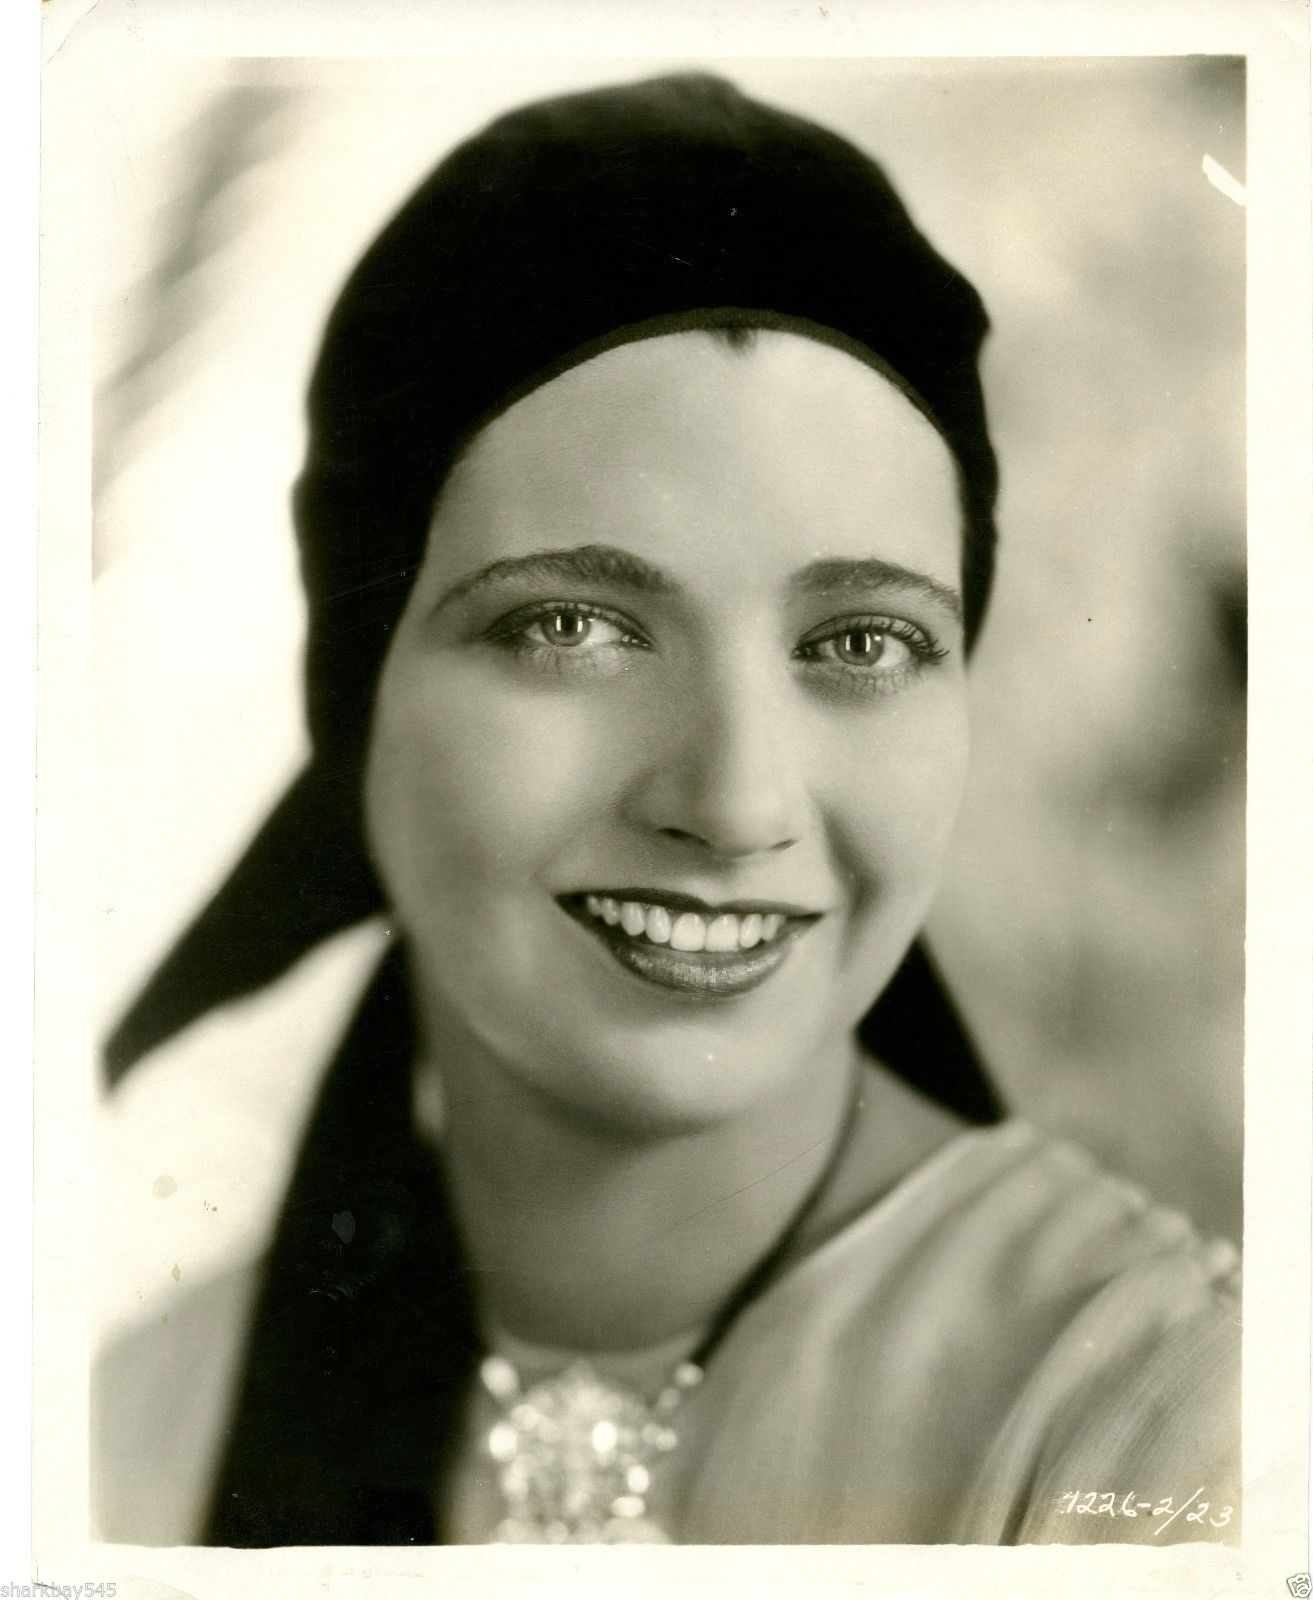 Discussion on this topic: Park Overall born March 15, 1957 (age 61), kay-francis/